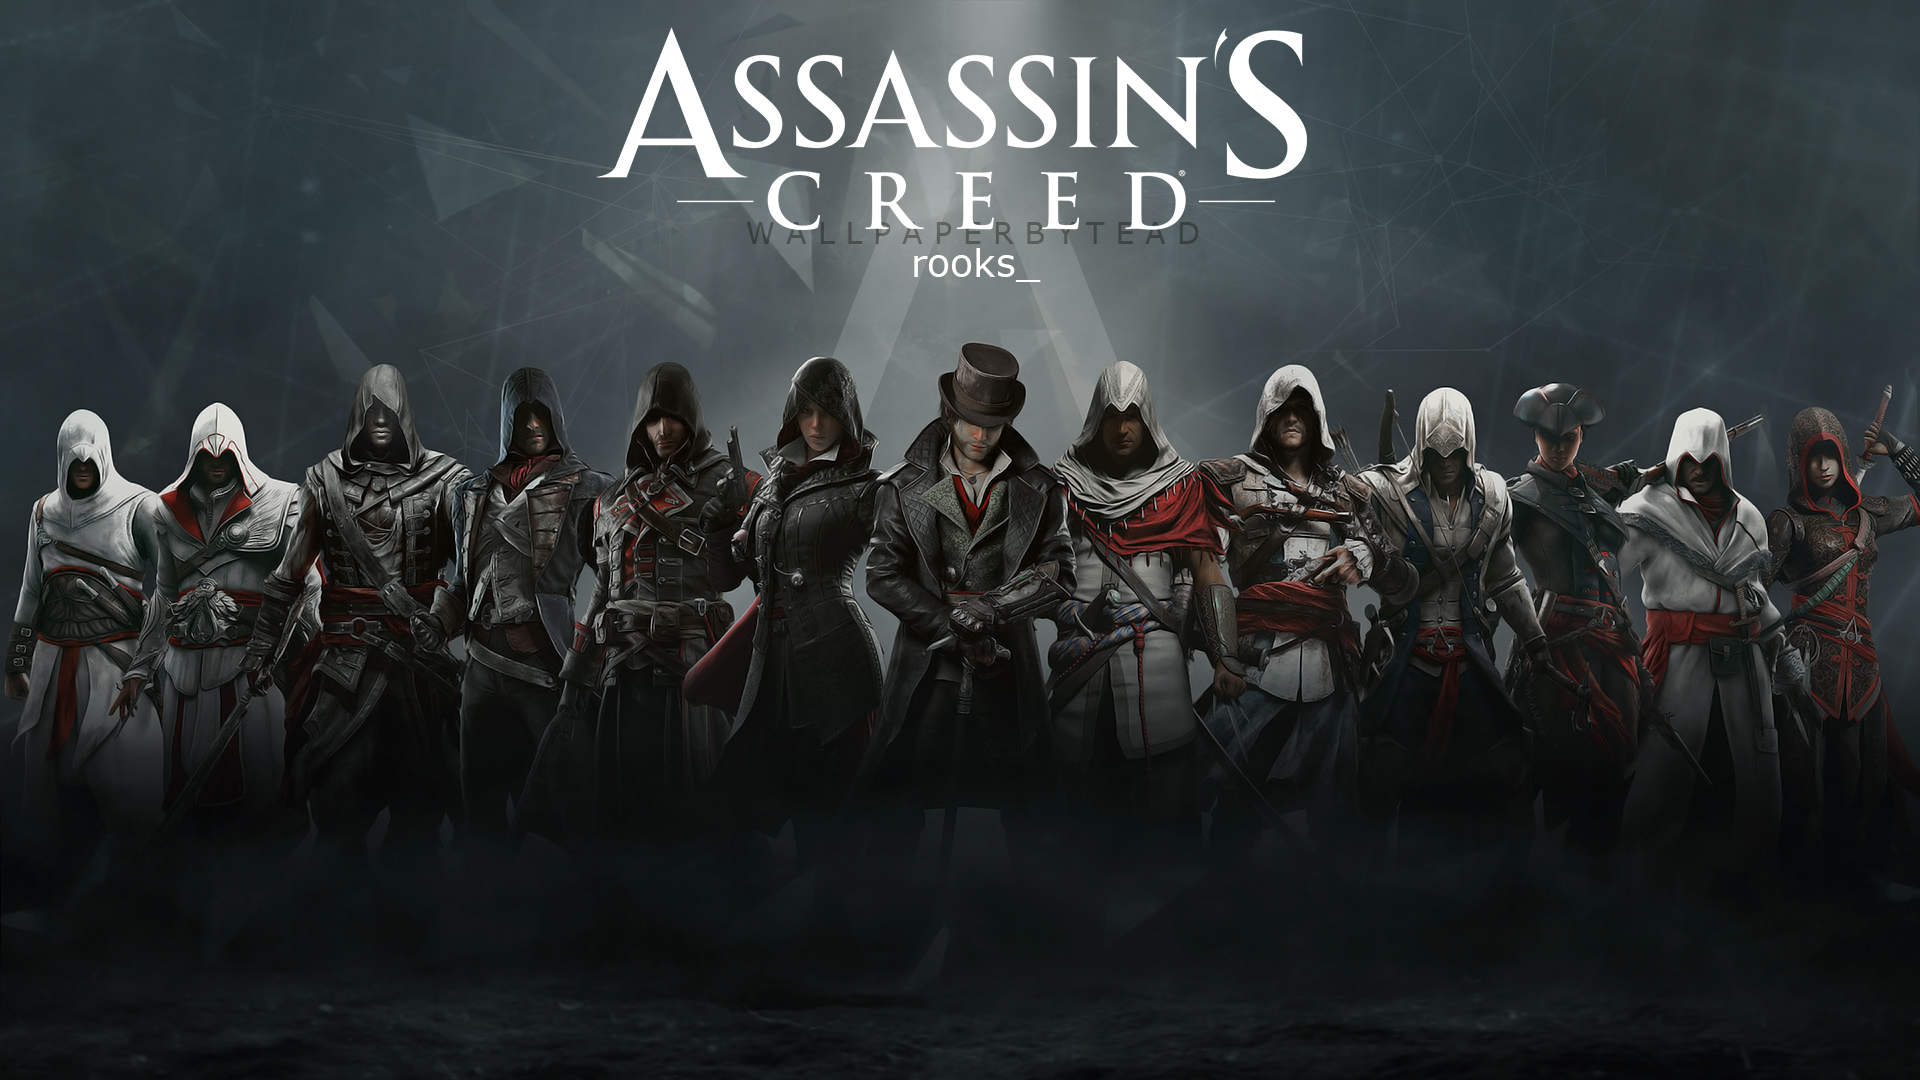 Assassin S Creed Hd Wallpaper 5 By Tead By Santap555 On Deviantart